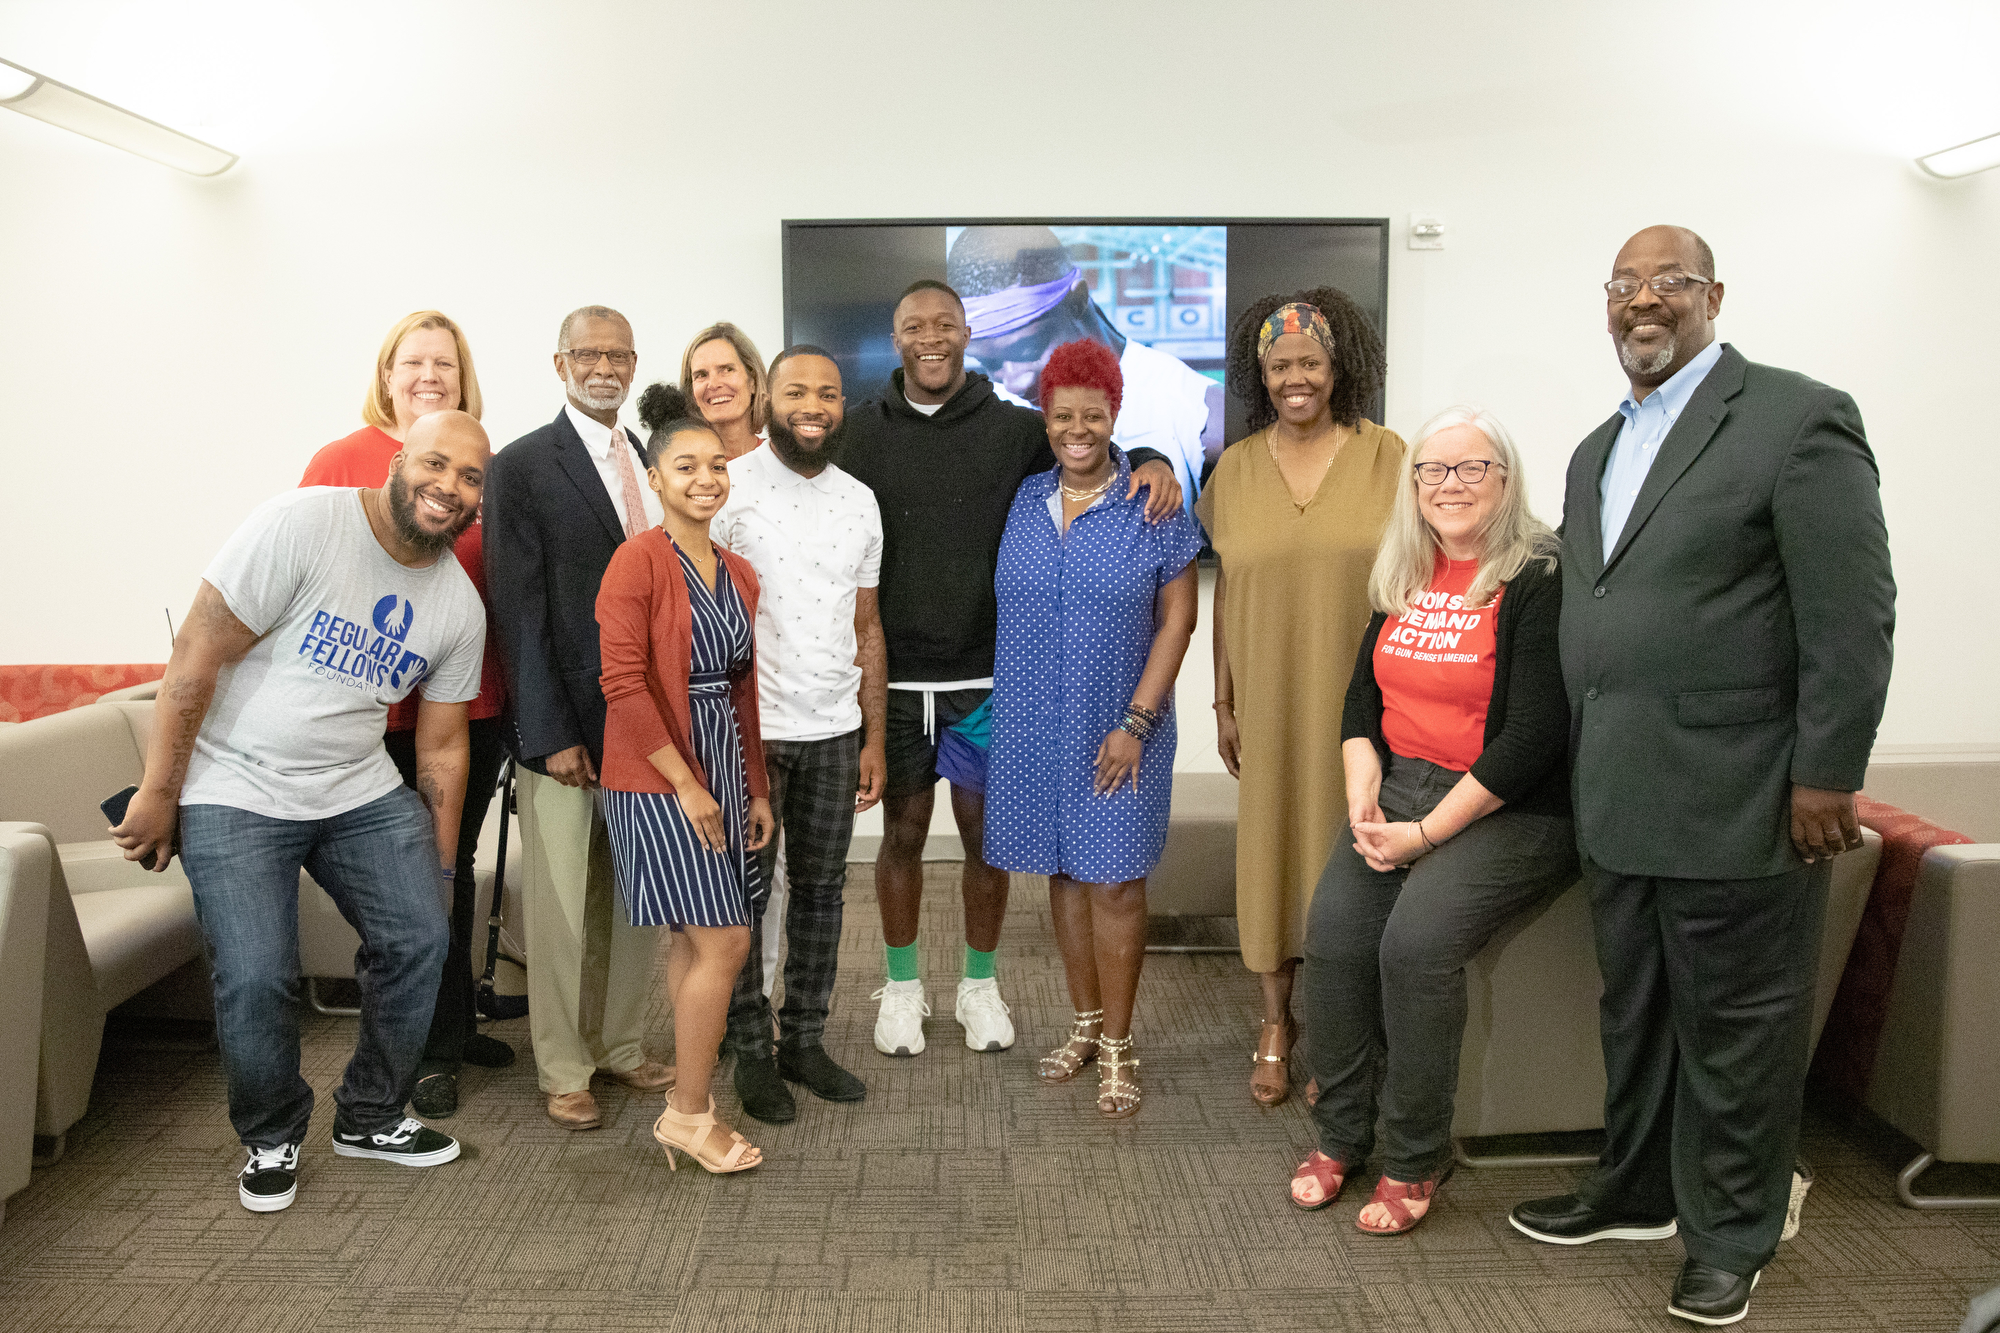 July 8, 2019: Senator Haywood joins Will Parks, Darnell Artis, Philadelphia CeaseFire, The Regular Fellows Foundation, Philadelphia Parks and Recreation, and Elder Harrison for the announcement of Ahead of the Game a basketball league being implemented to combat community violence in Northwest Philadelphia.